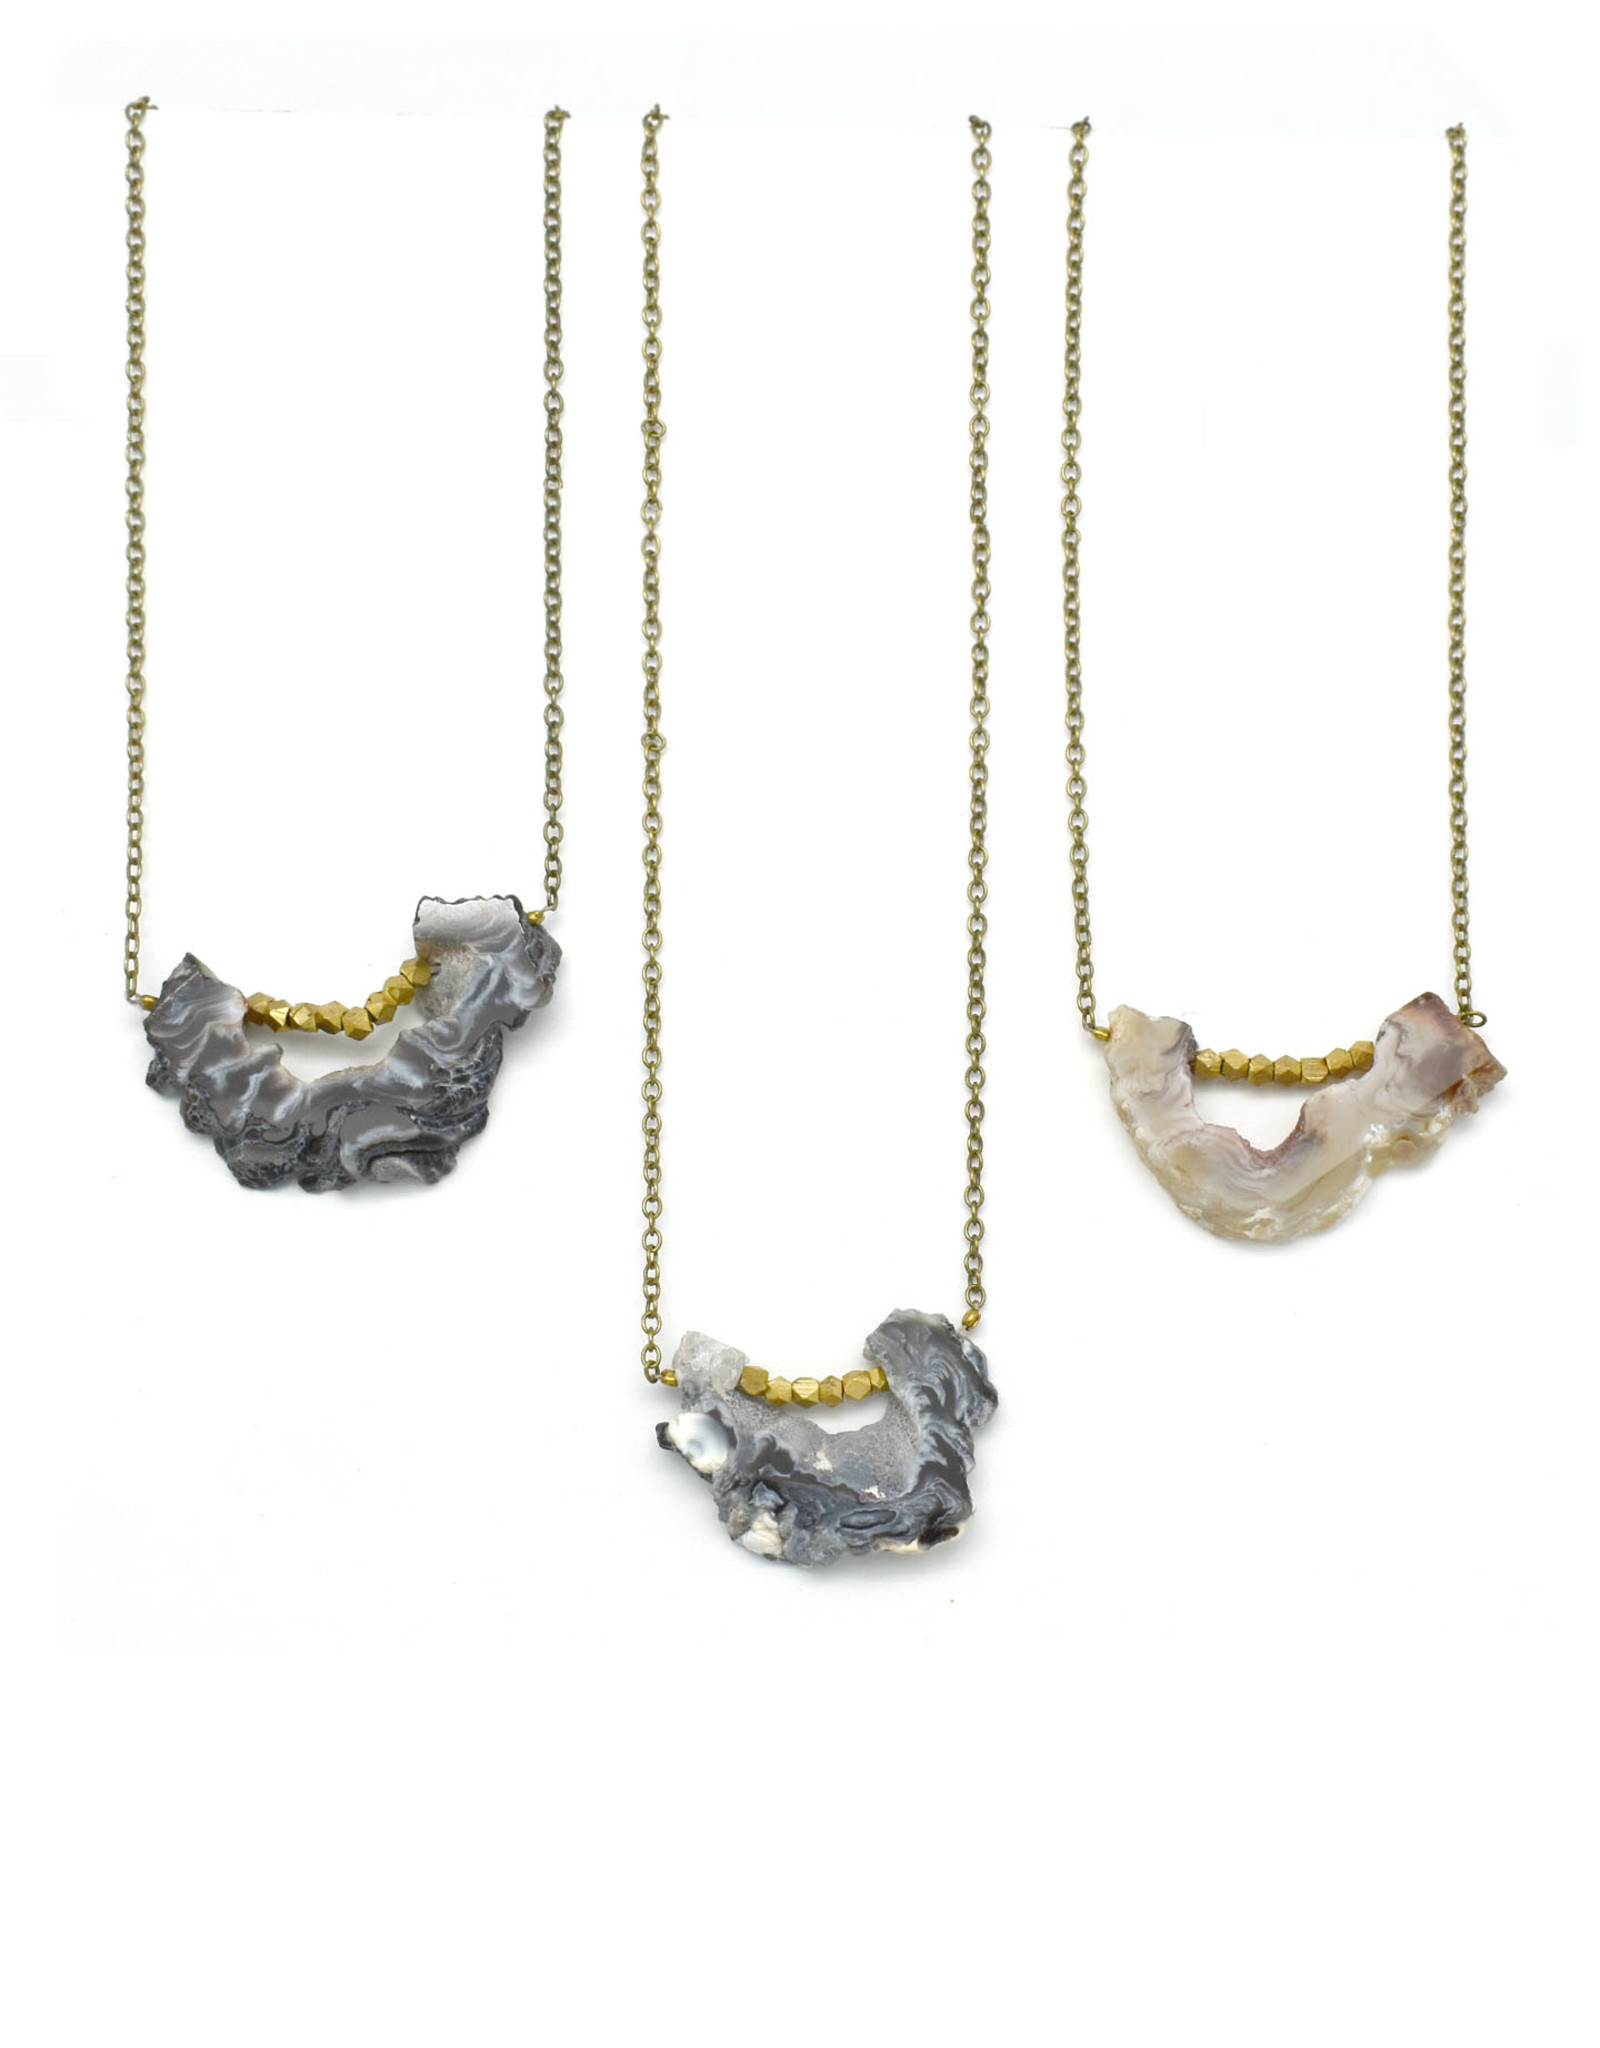 Agate Slice Necklace - Assorted